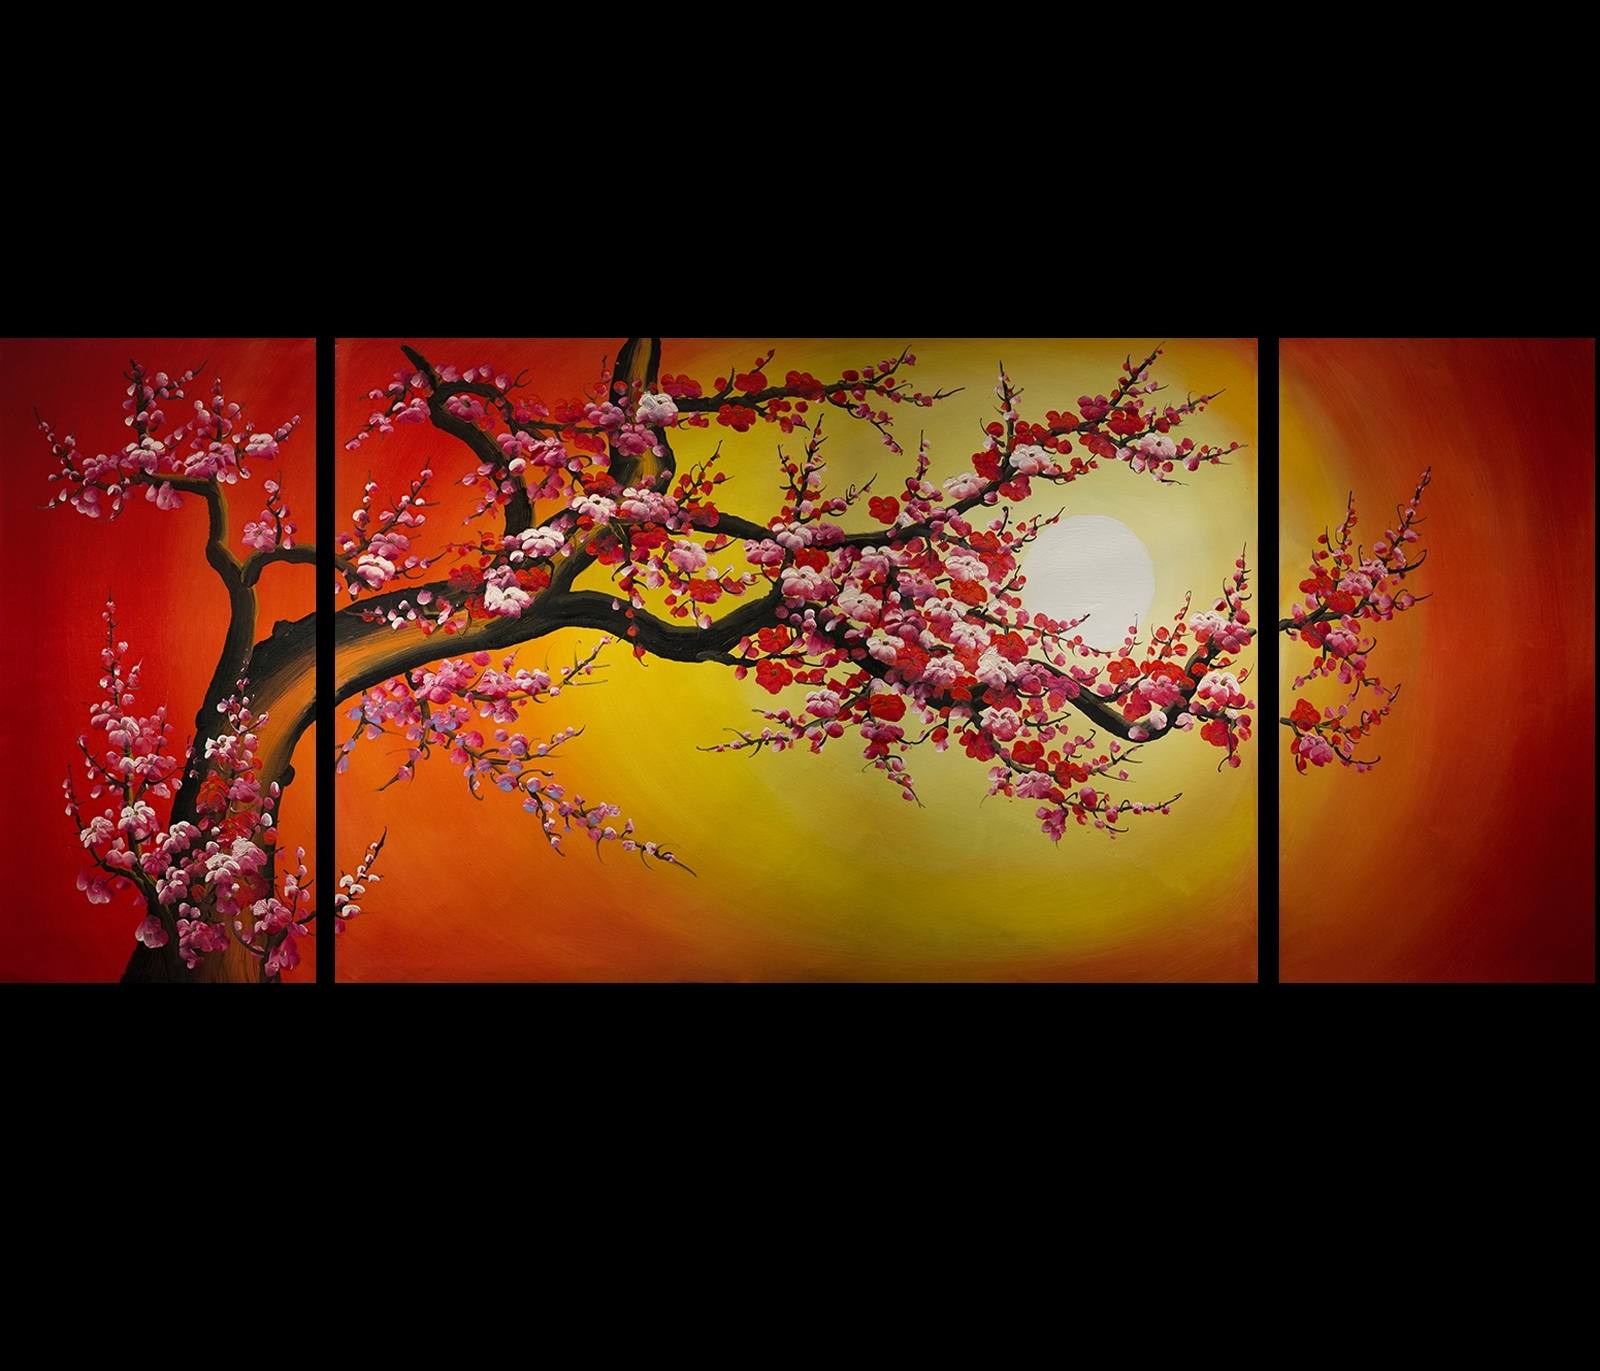 Chinese Cherry Blossom Feng Shui Oil Painting Abstract Art Modern Pertaining To 2018 Abstract Cherry Blossom Wall Art (View 9 of 20)